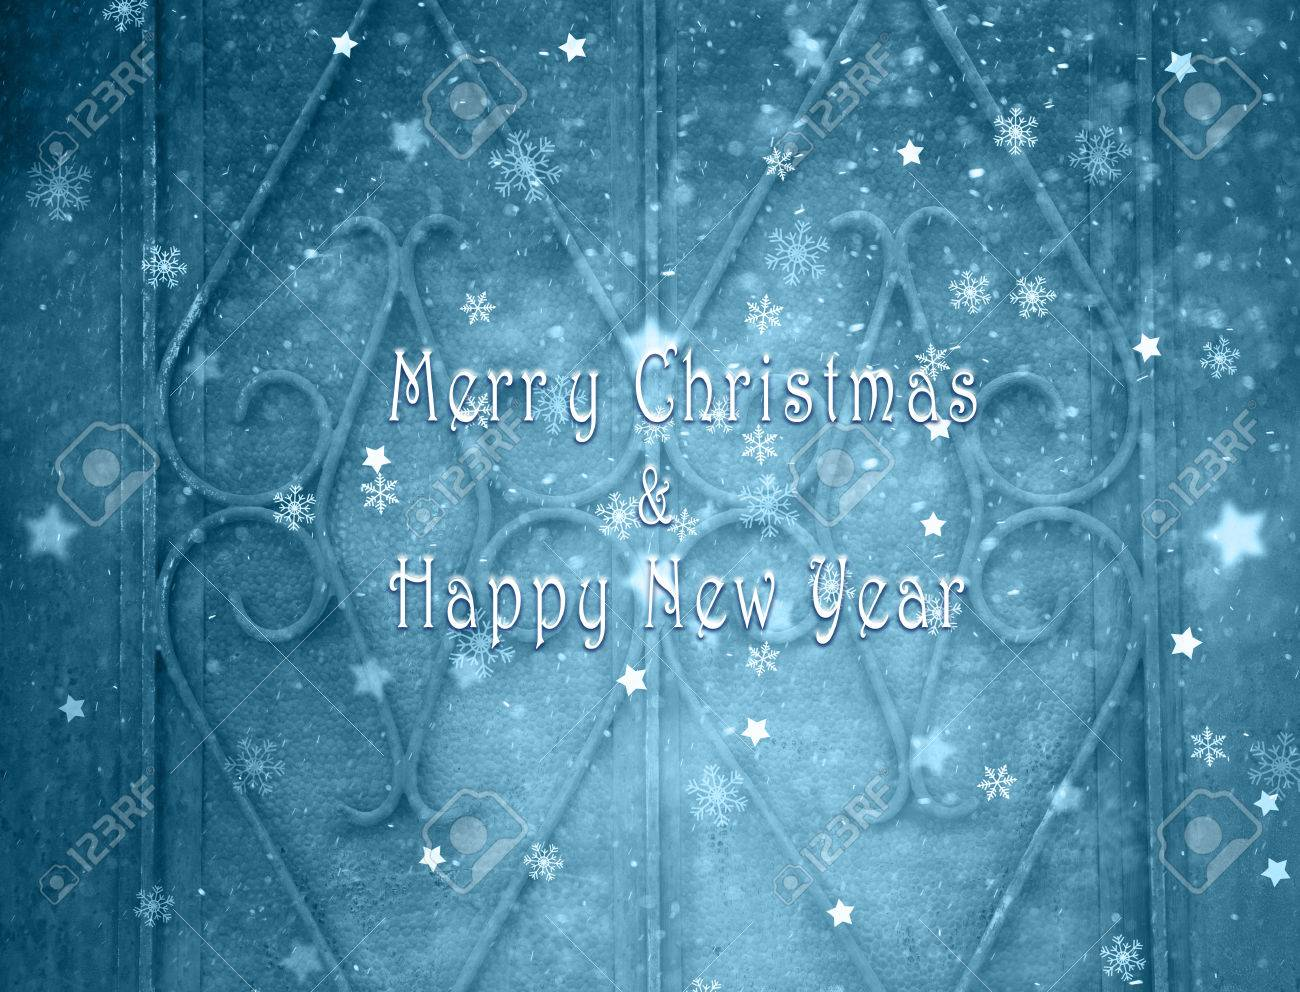 merry christmas and happy new year greeting card message on old house door details background with